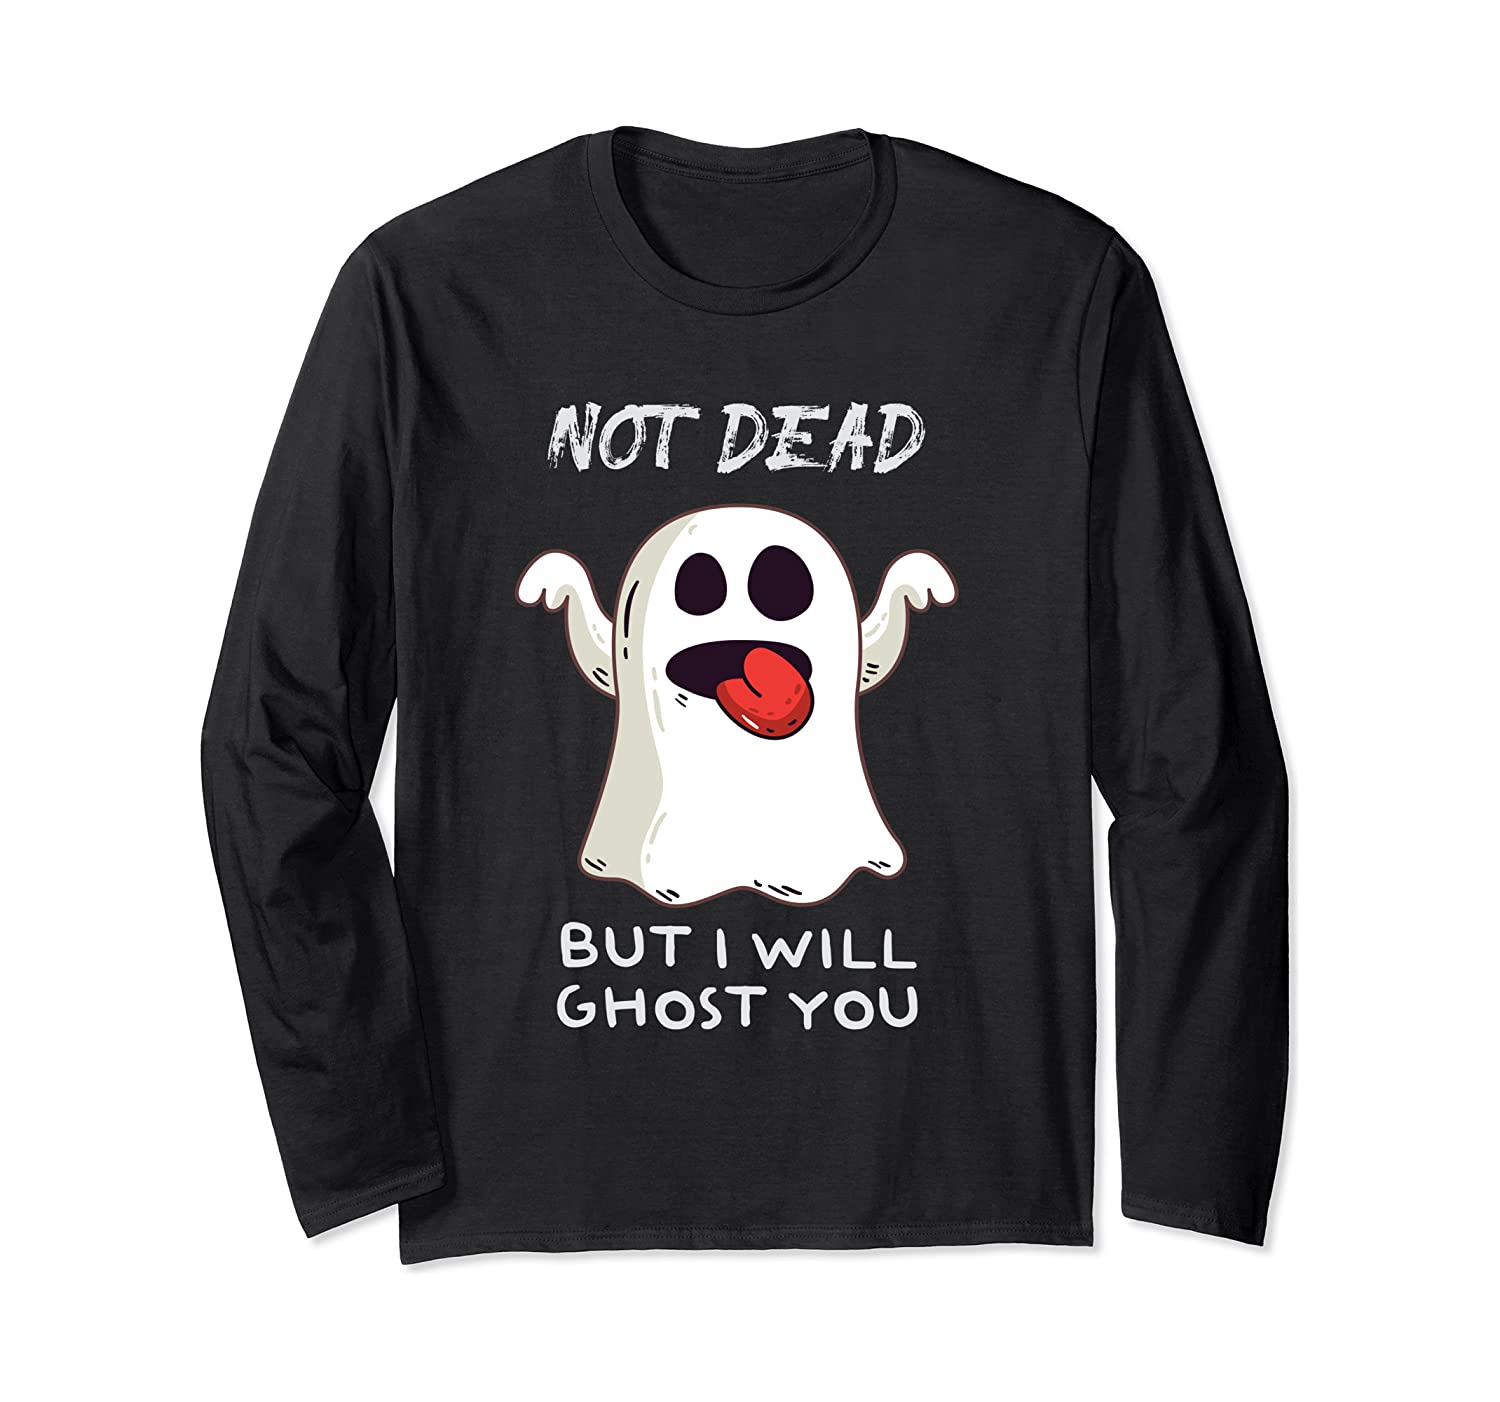 Halloween Ghost Spooky Trick or Treat Costume Gift Idea Long Sleeve T-Shirt